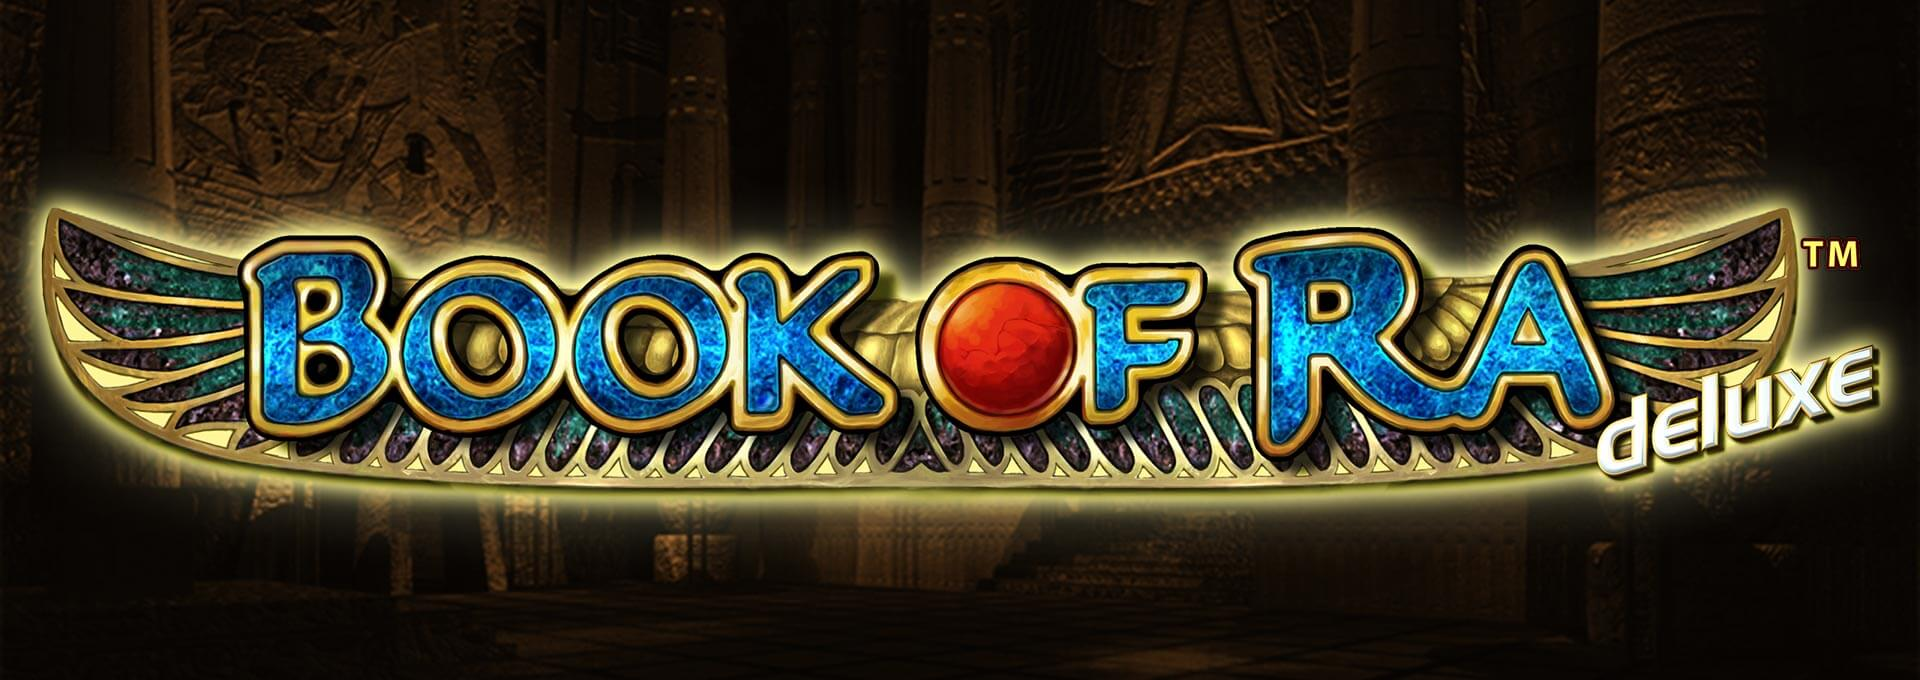 casino book of ra online online casino slot